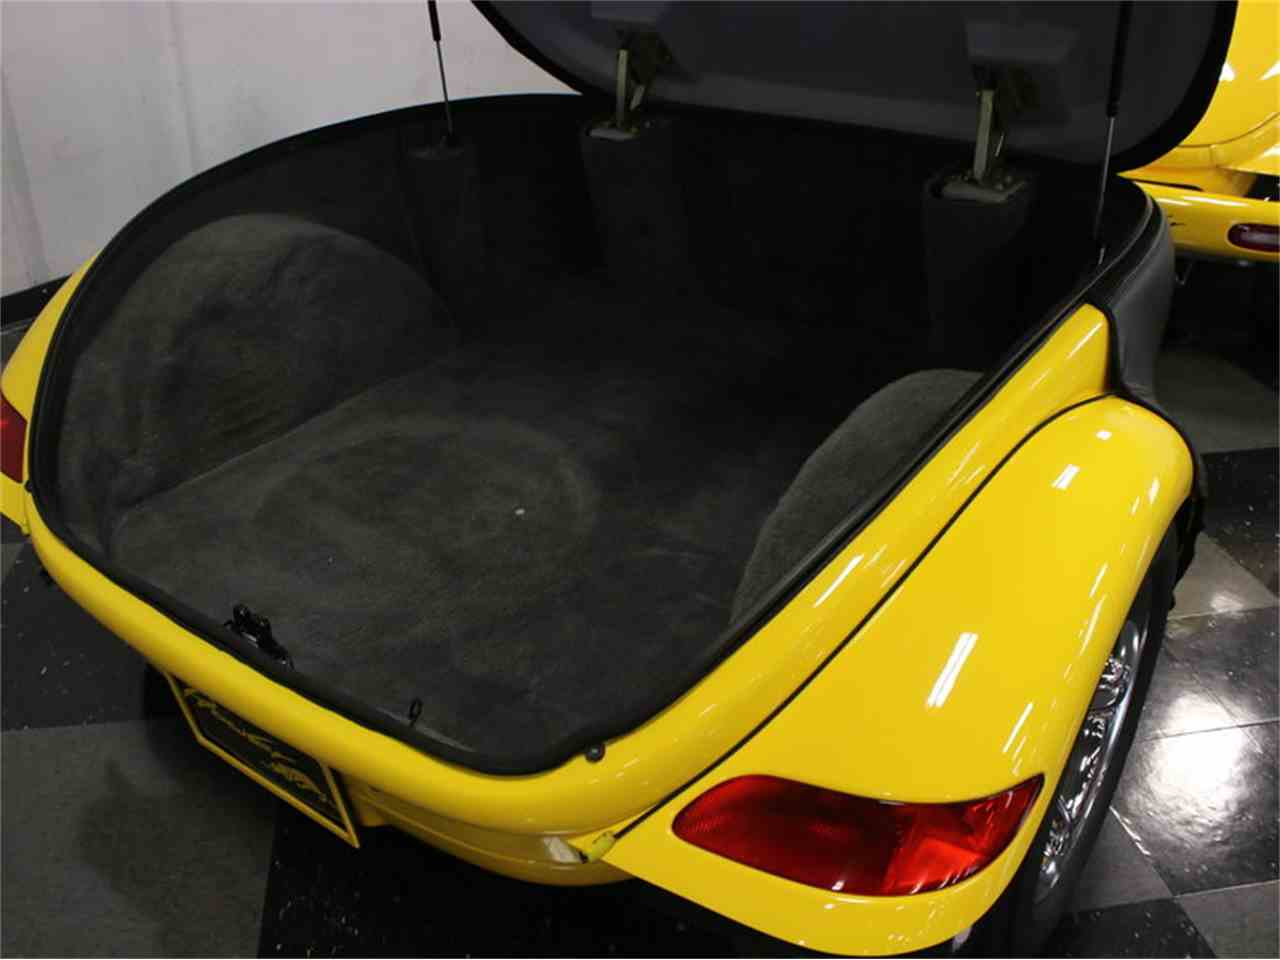 Large Picture of '99 Plymouth Prowler located in Ft Worth Texas Offered by Streetside Classics - Dallas / Fort Worth - J56O